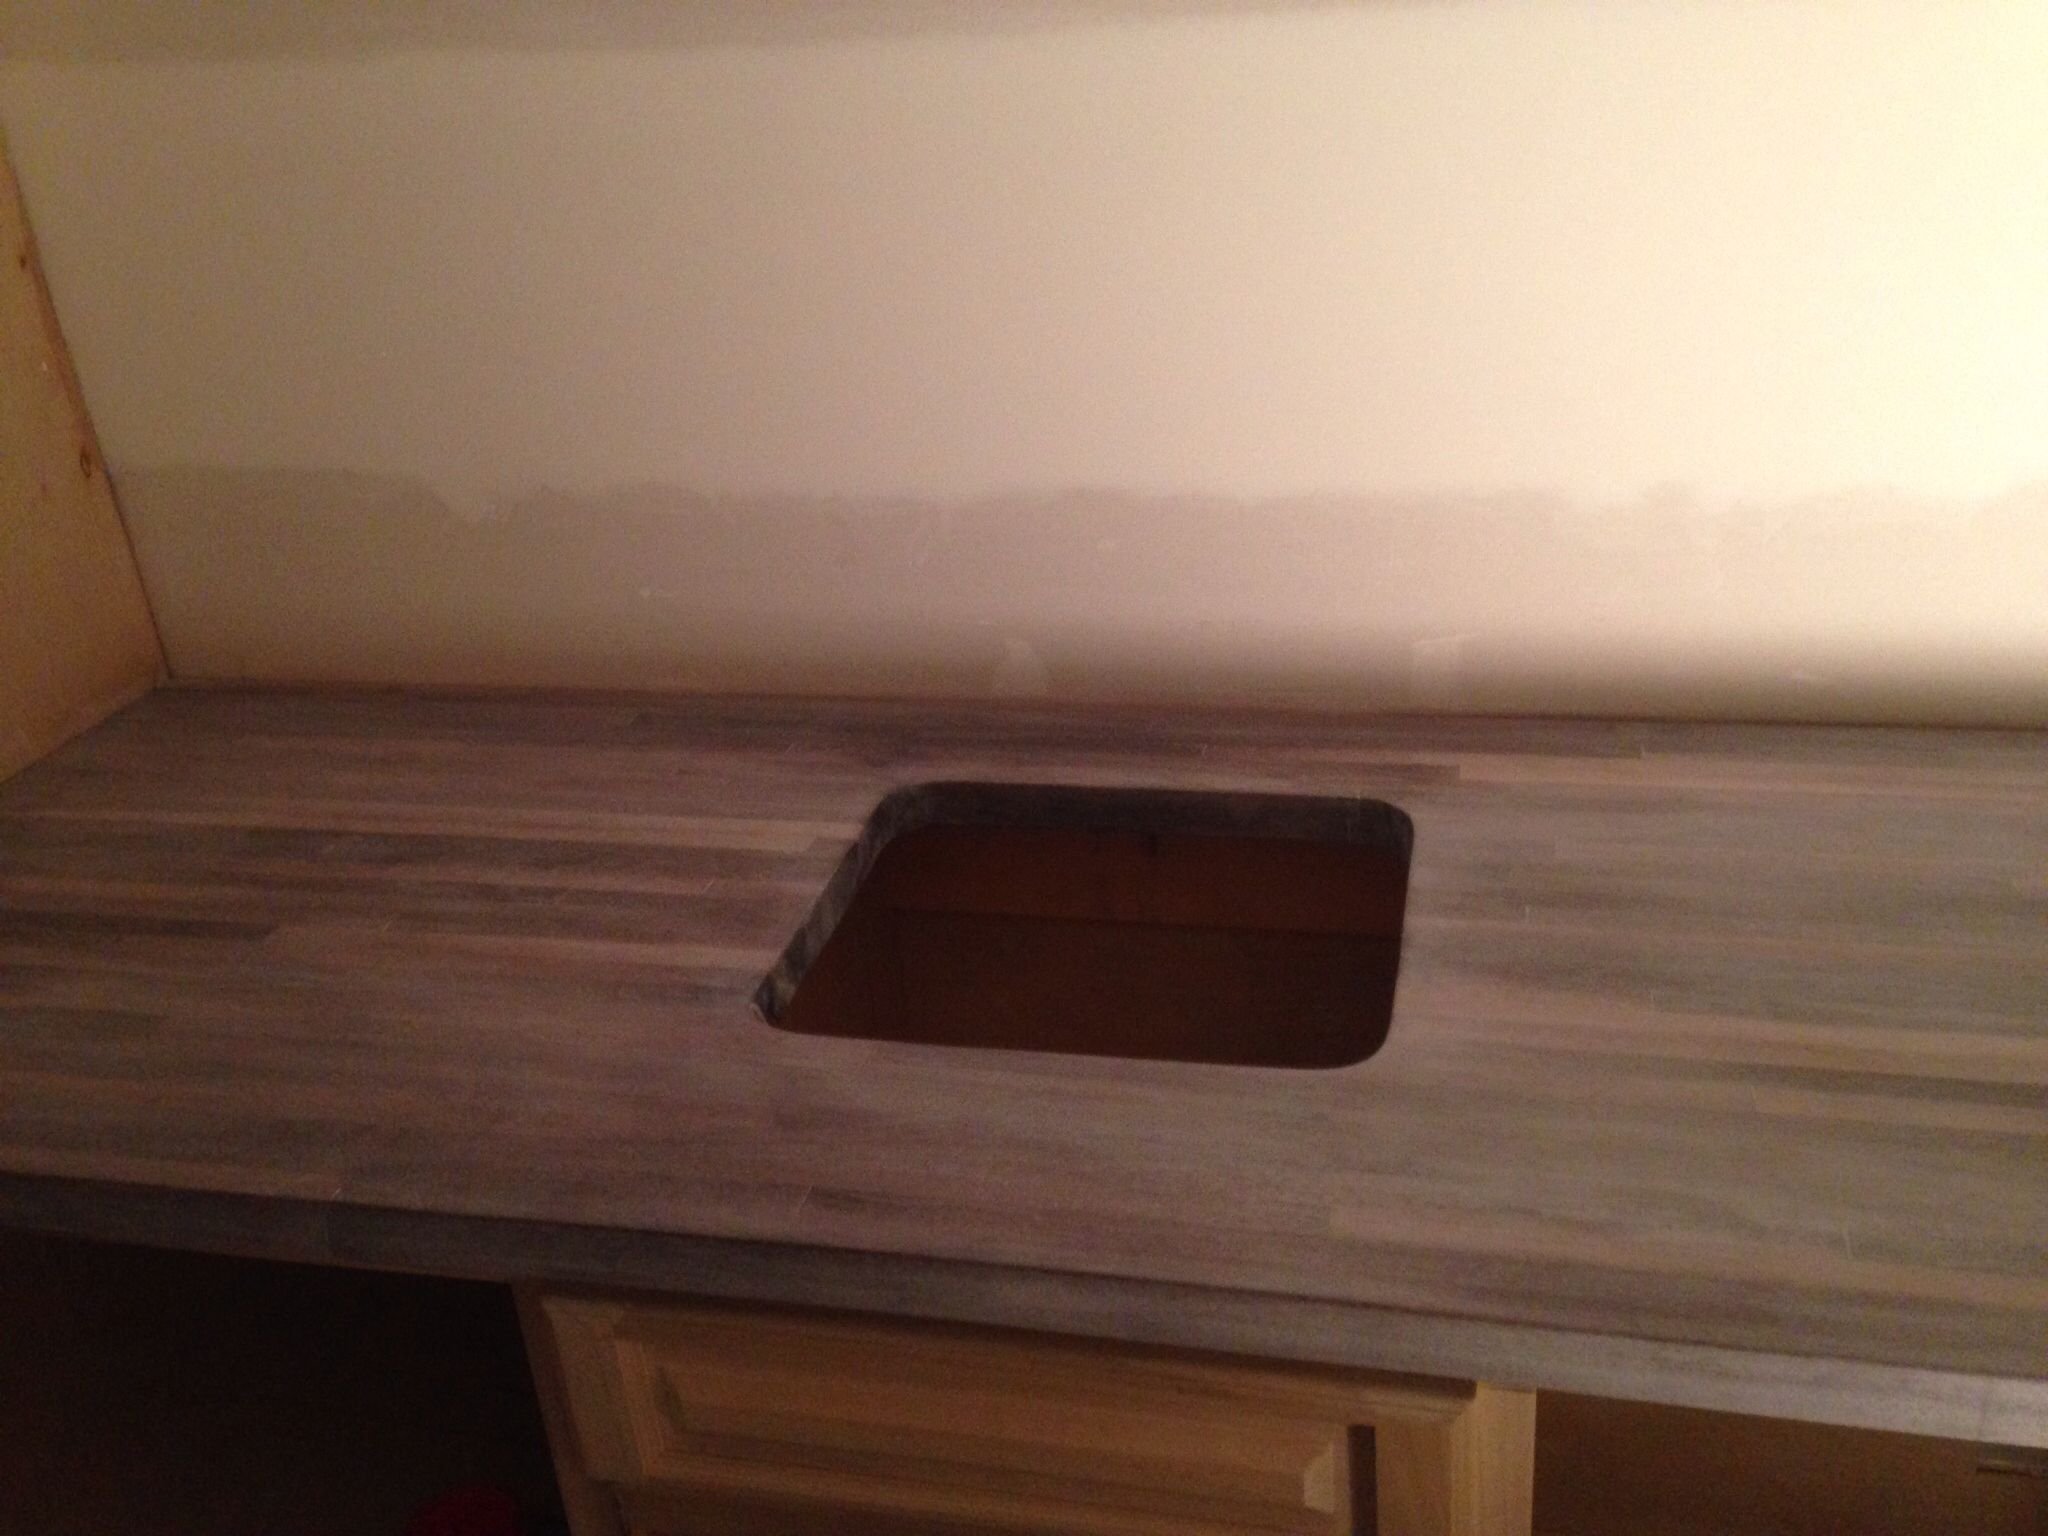 How to get beeswax off a counter top or table surface 5 steps - Hickory Butcher Block Countertop Stained With Driftwood Finish And Waxed With Briwax Liming Wax And Beeswax